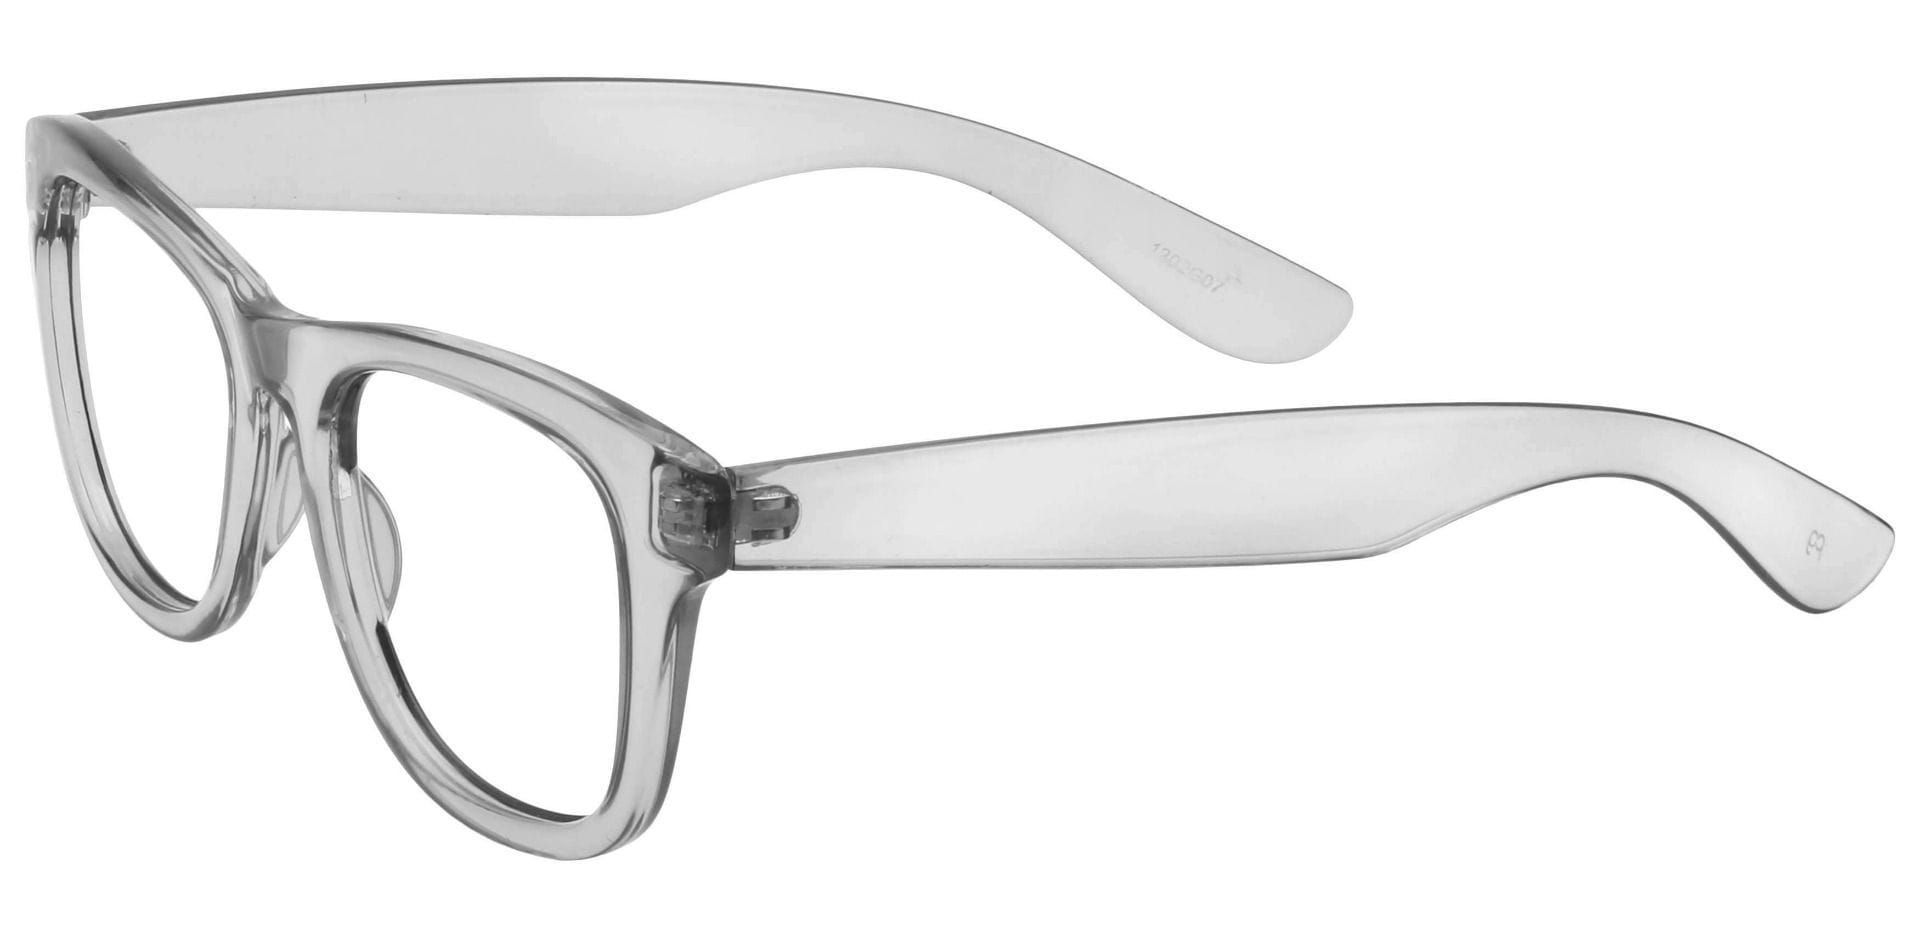 Callie Square Blue Light Blocking Glasses - Gray